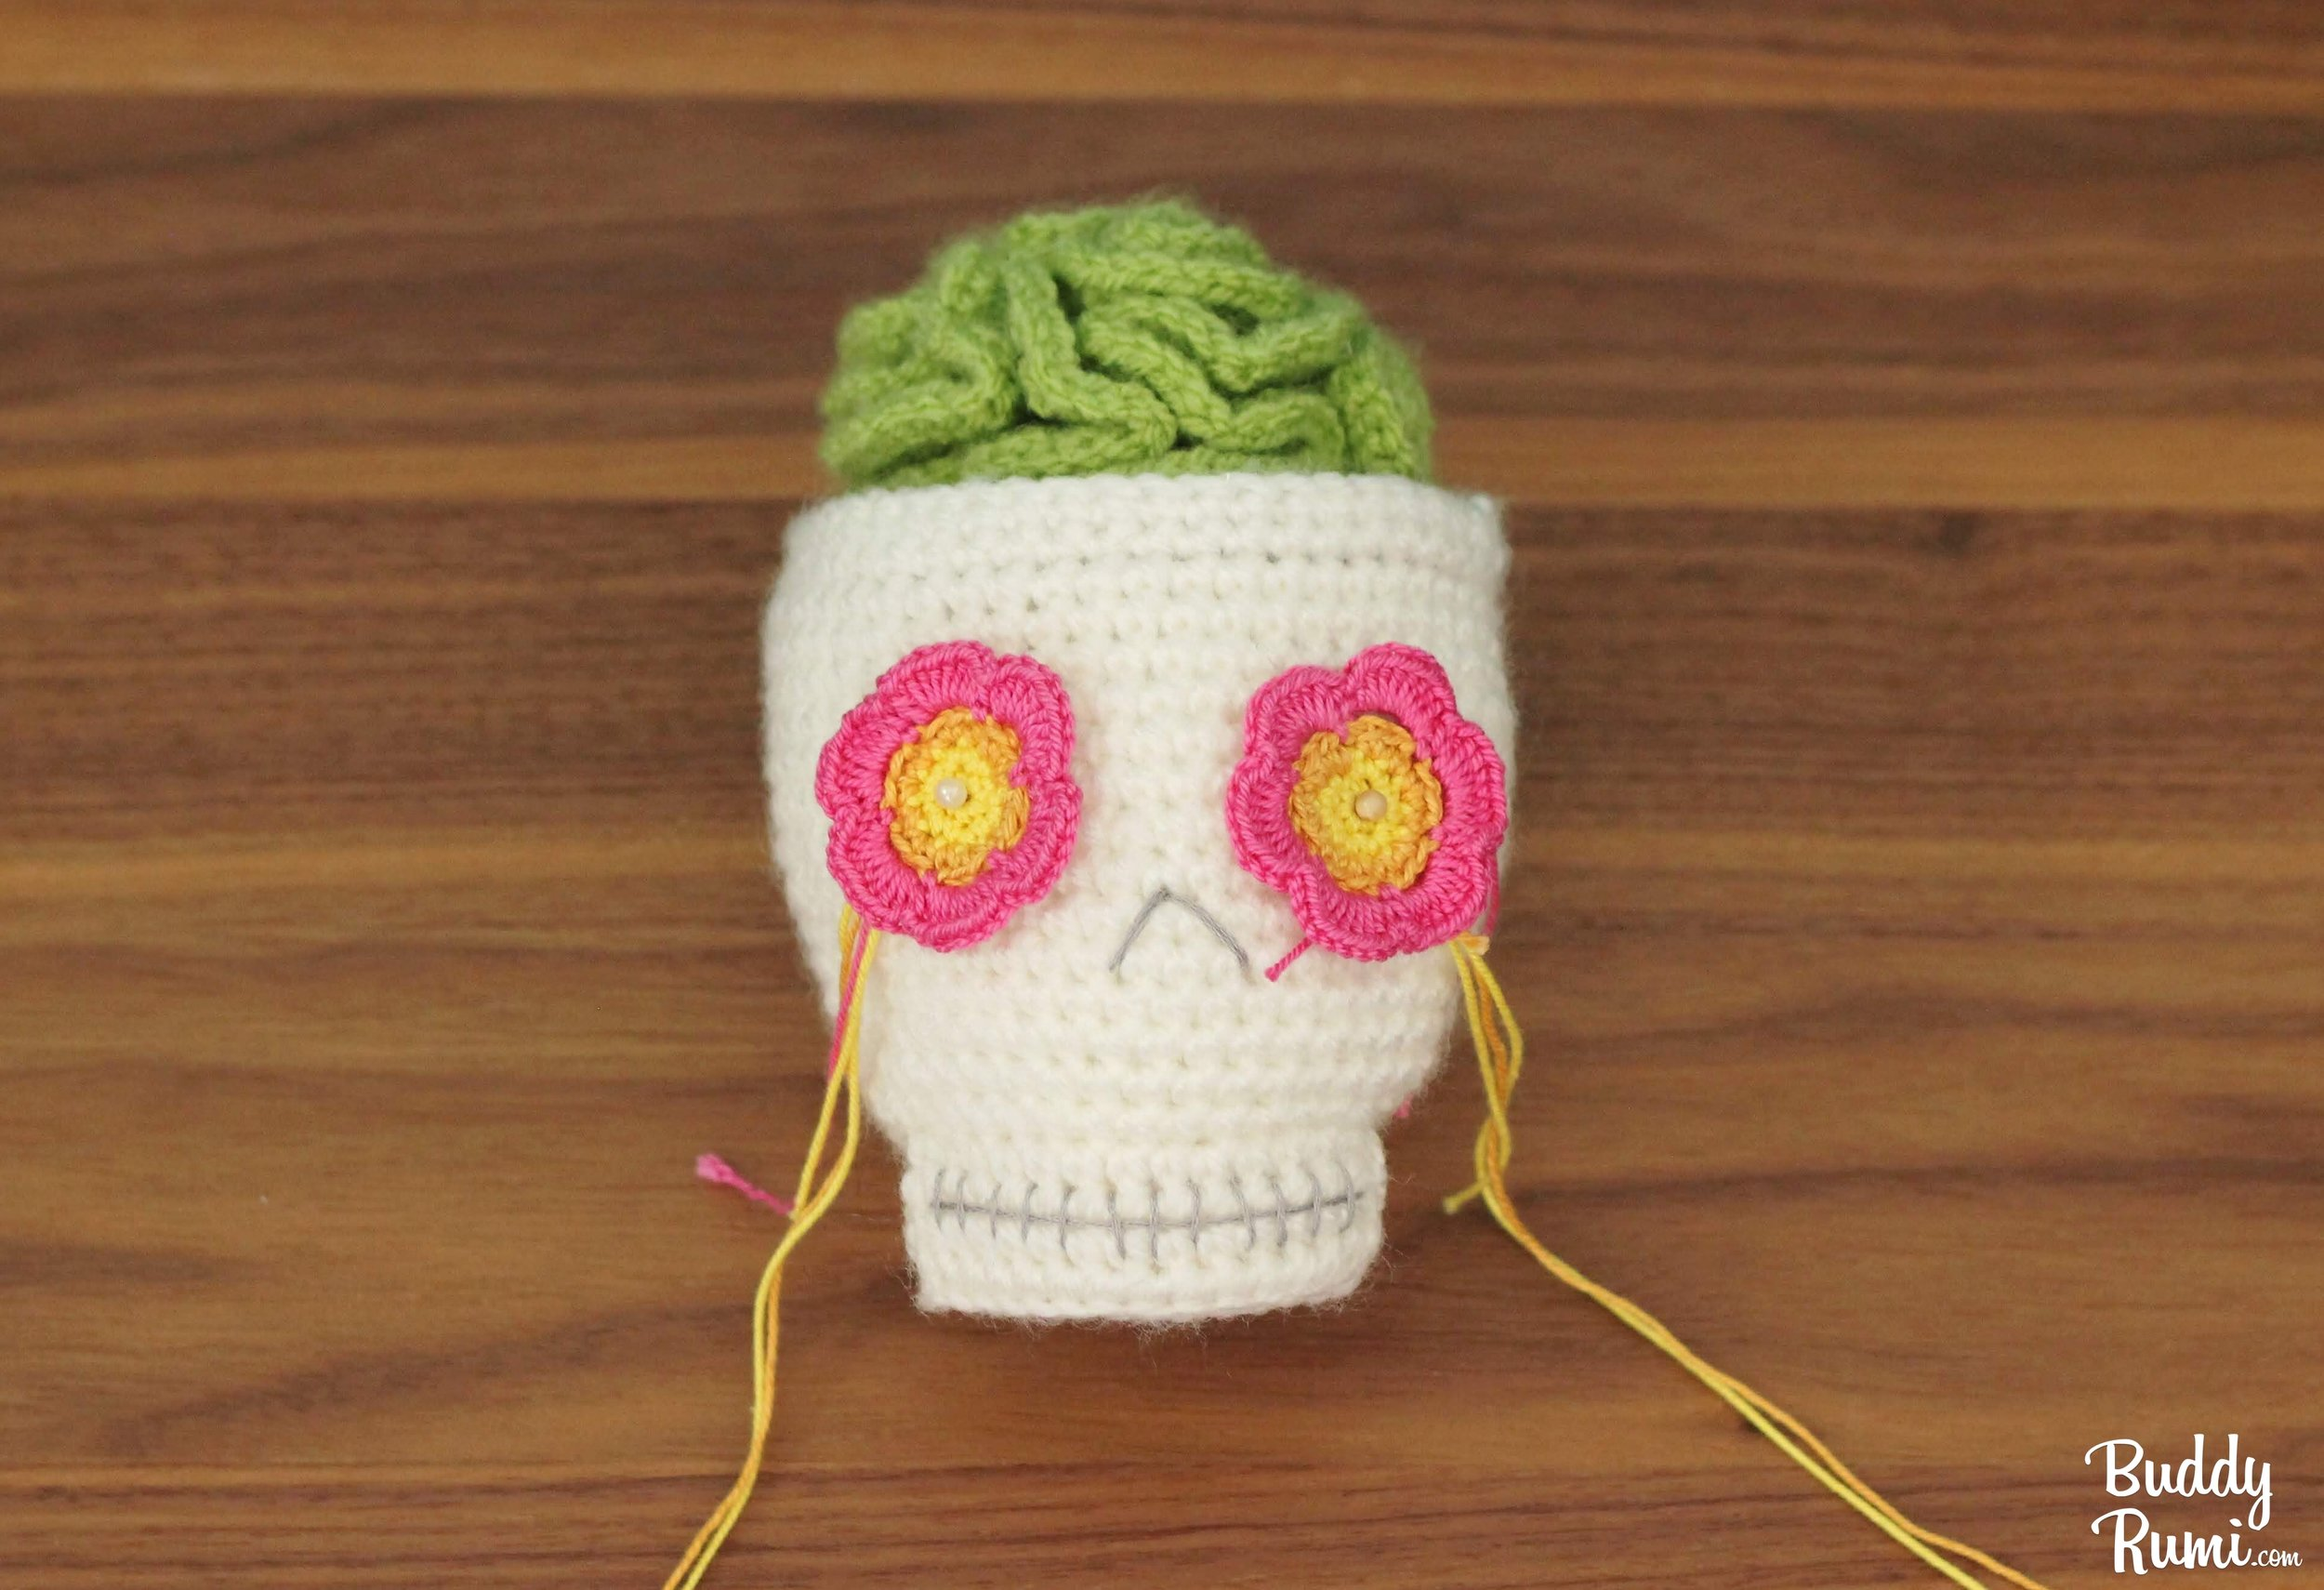 Amigurumi crocheted brain cactus in skull